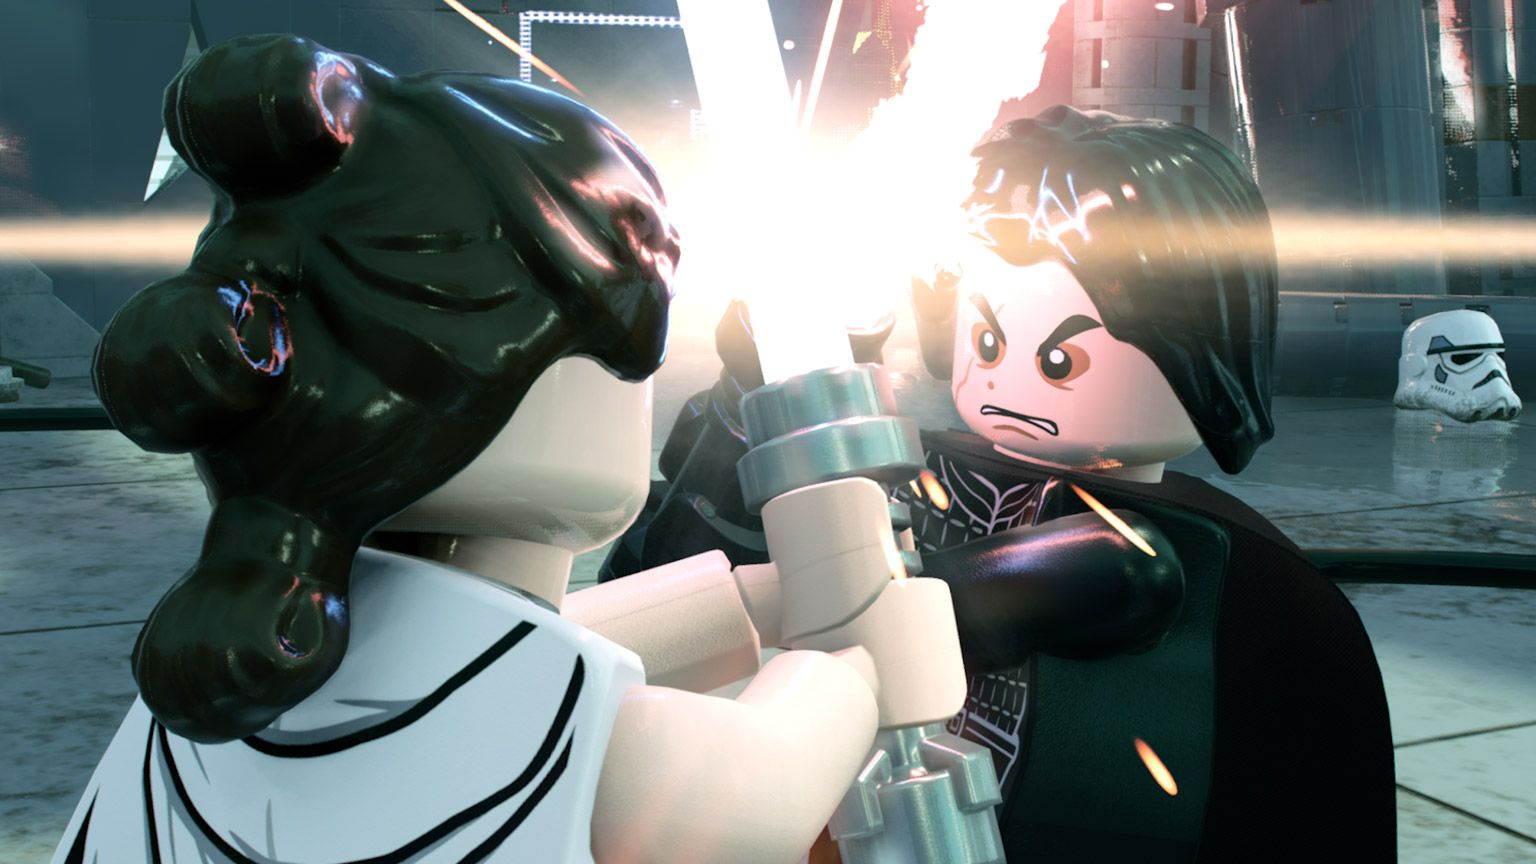 /lego-star-wars-the-skywalker-saga-receives-delay-from-tt-games-qjh33aq feature image